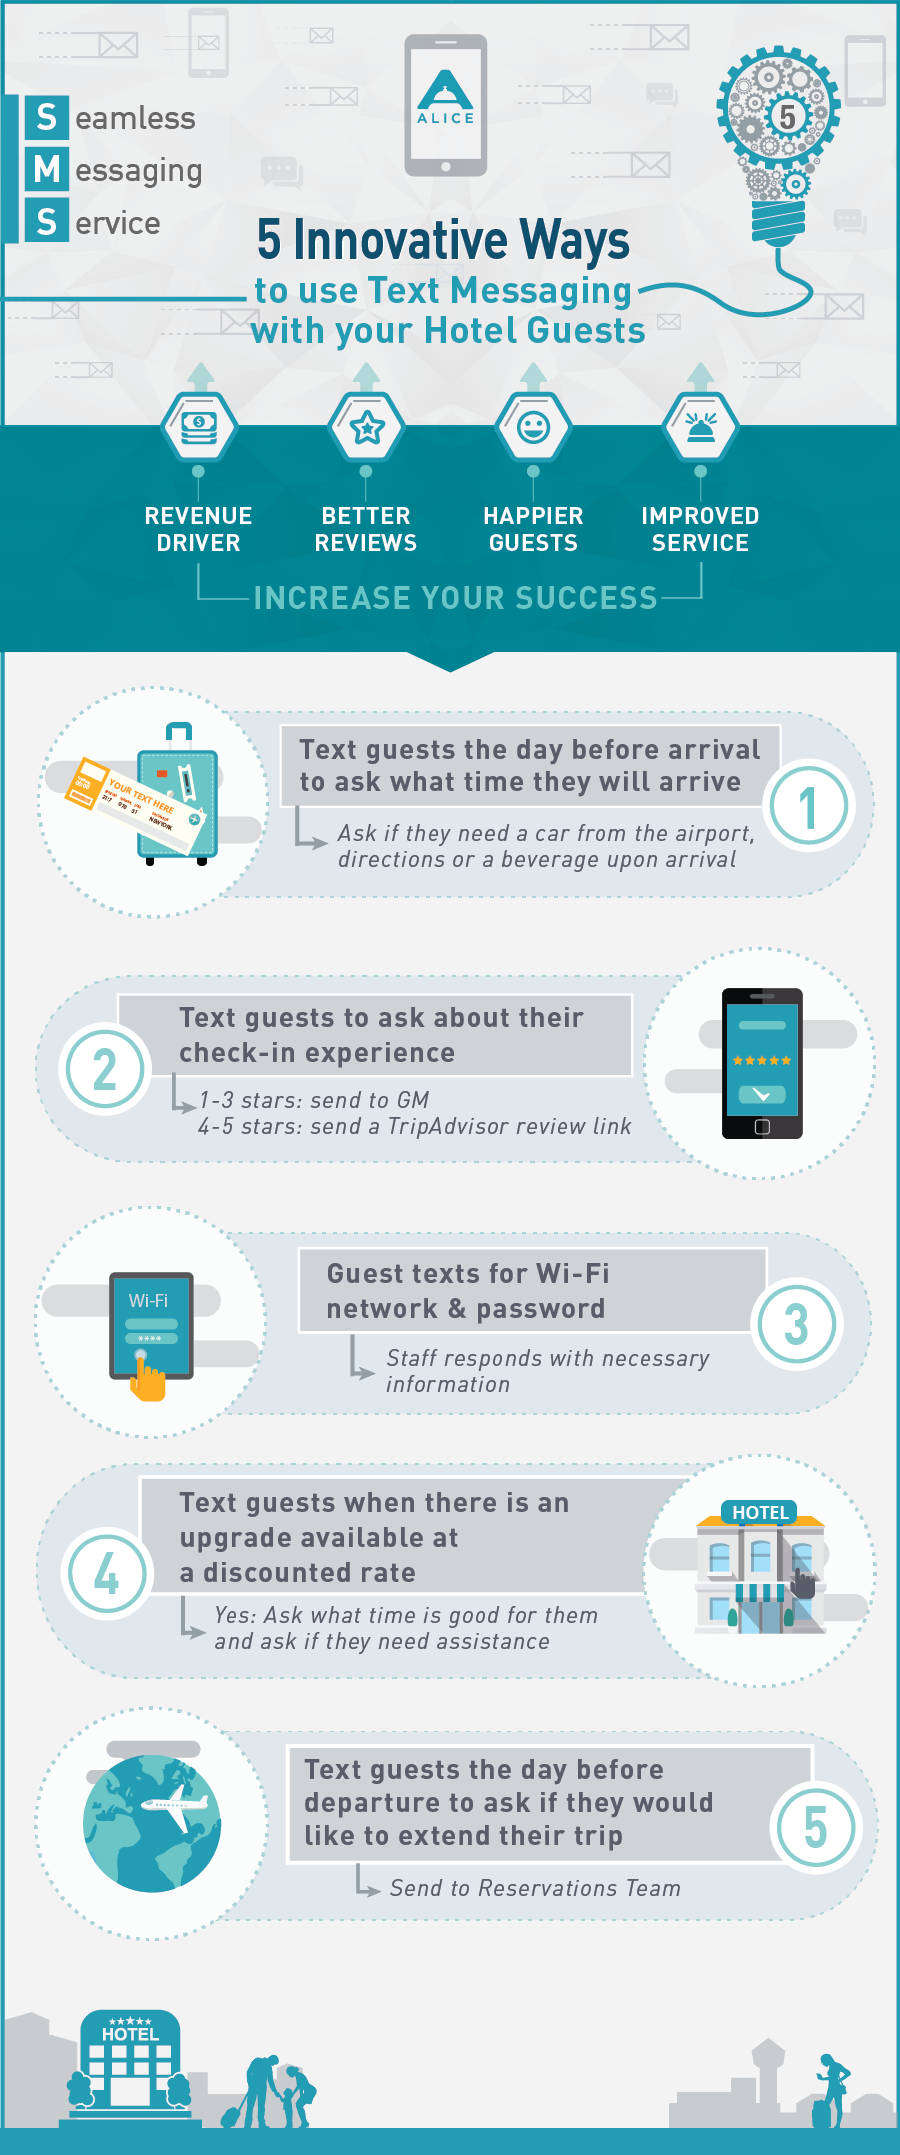 5 Ways Hotels Can Use Text Messaging with their Guests [Infographic]